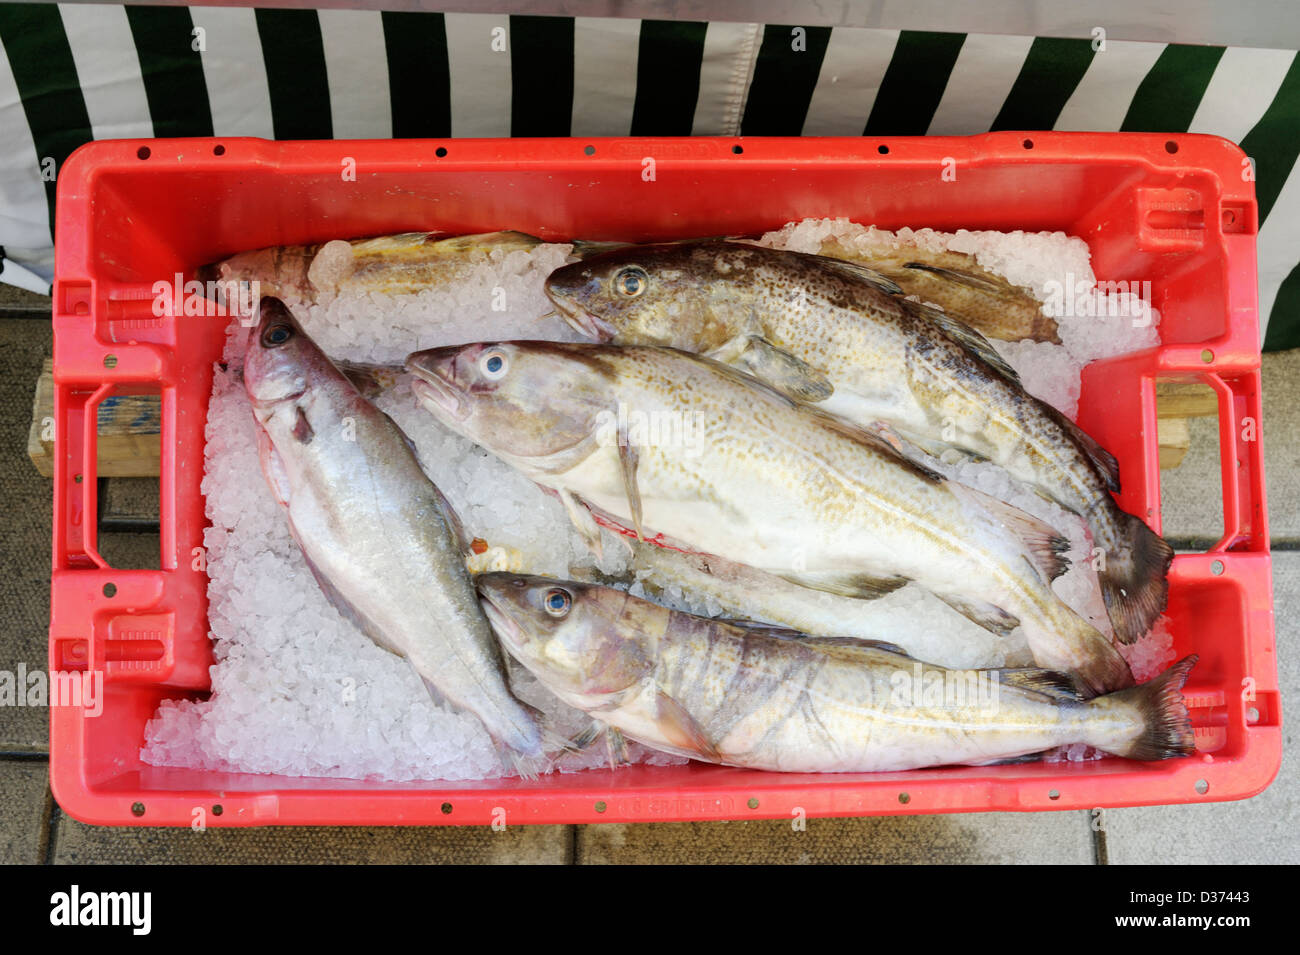 Atlantic cod, Gadus morhua and Pollack, Pollachius pollachius fish in a crate of ice at Aberystwyth farmers market, - Stock Image